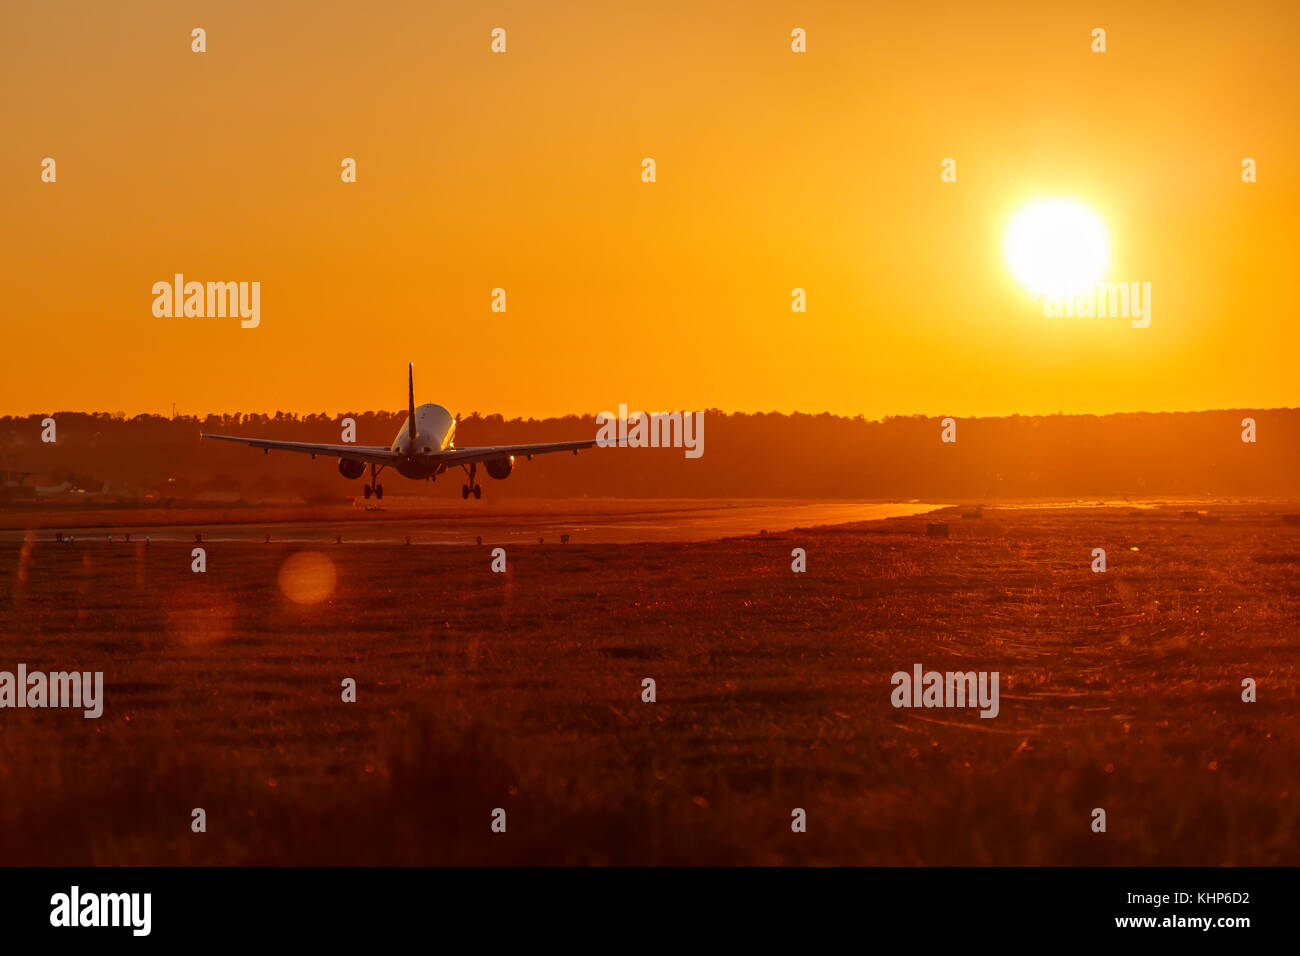 L'aéroport d'atterrissage avion soleil coucher locations de vacances billet d'avion voyage avion Photo Stock